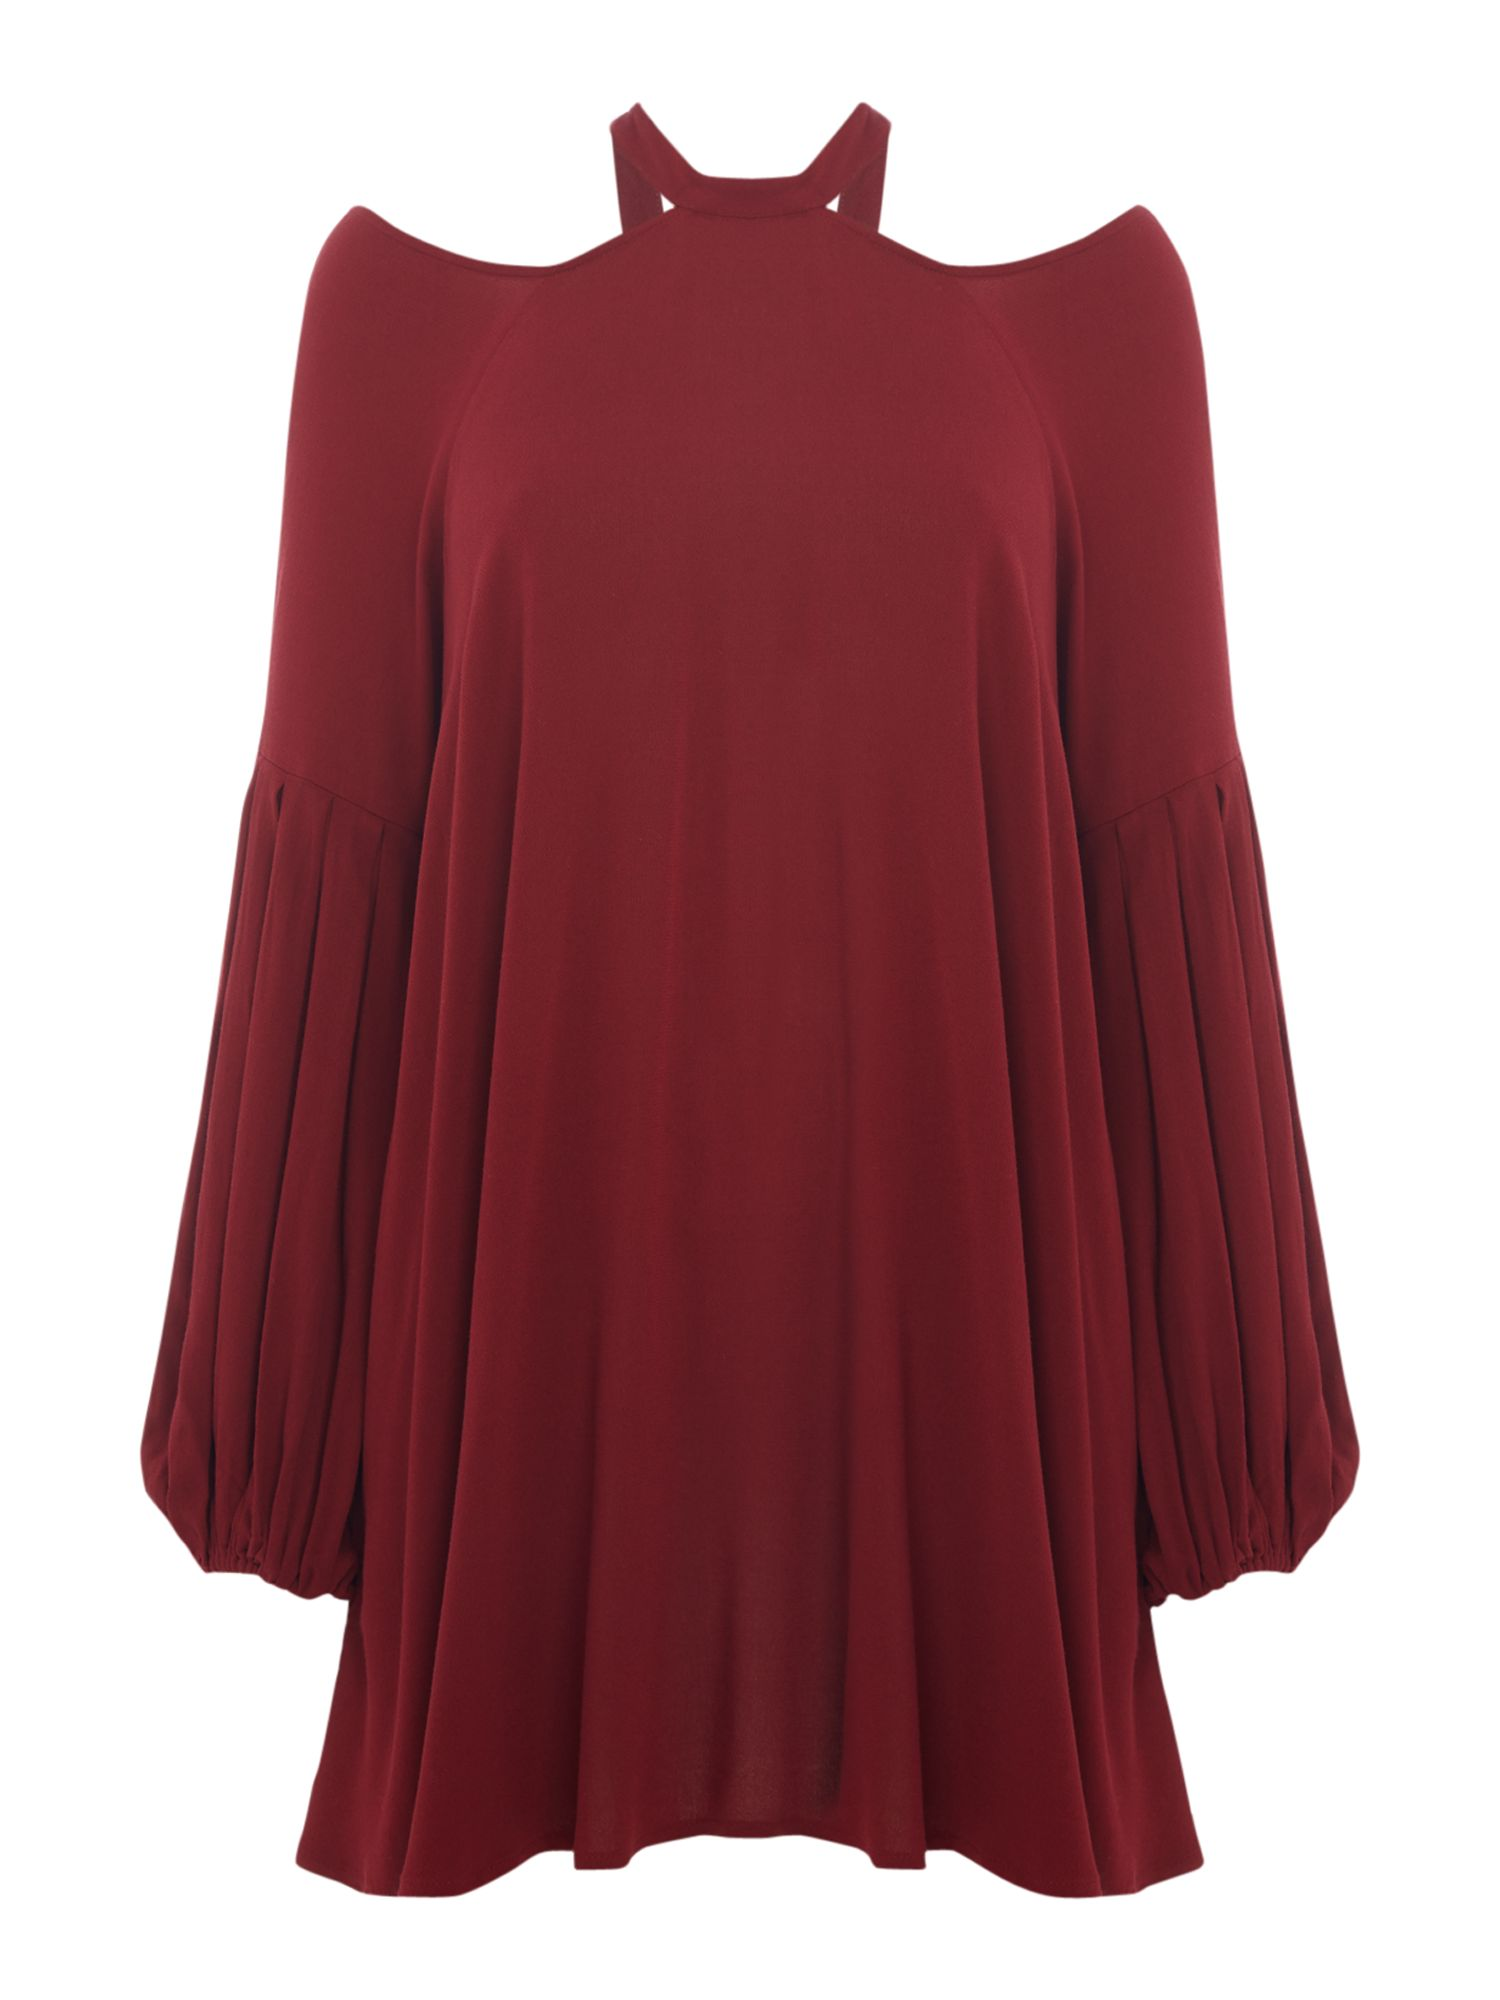 Free People Drift Away Long Line Top With Cut Out Shoulders, Red